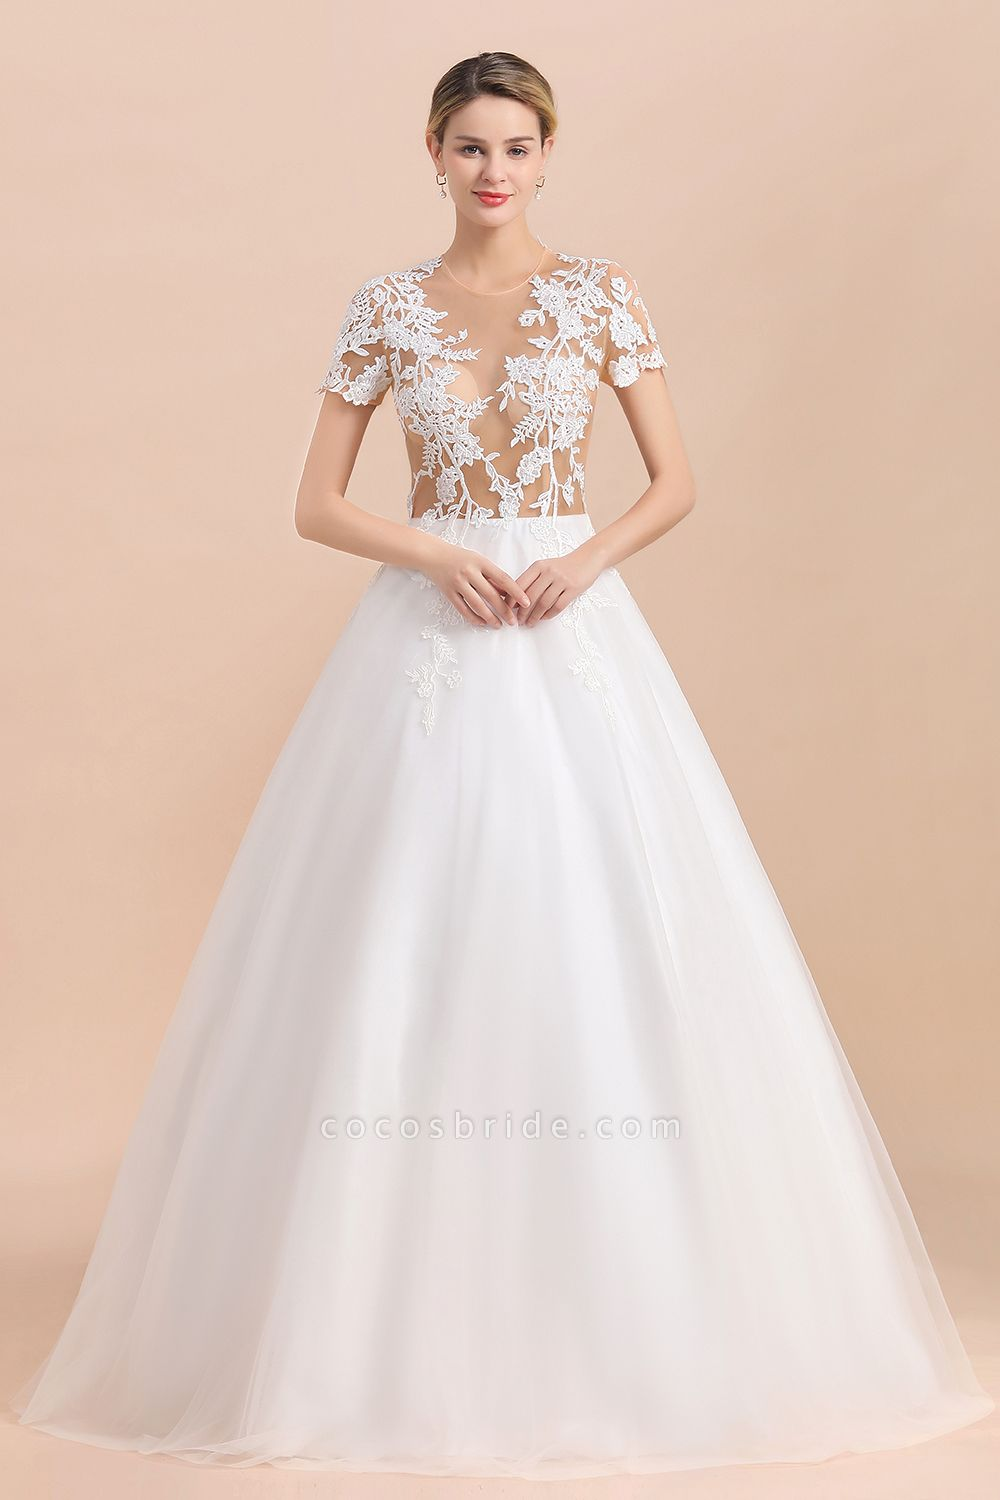 Chic Lace Tulle A-line Short Sleeve Wedding Dress